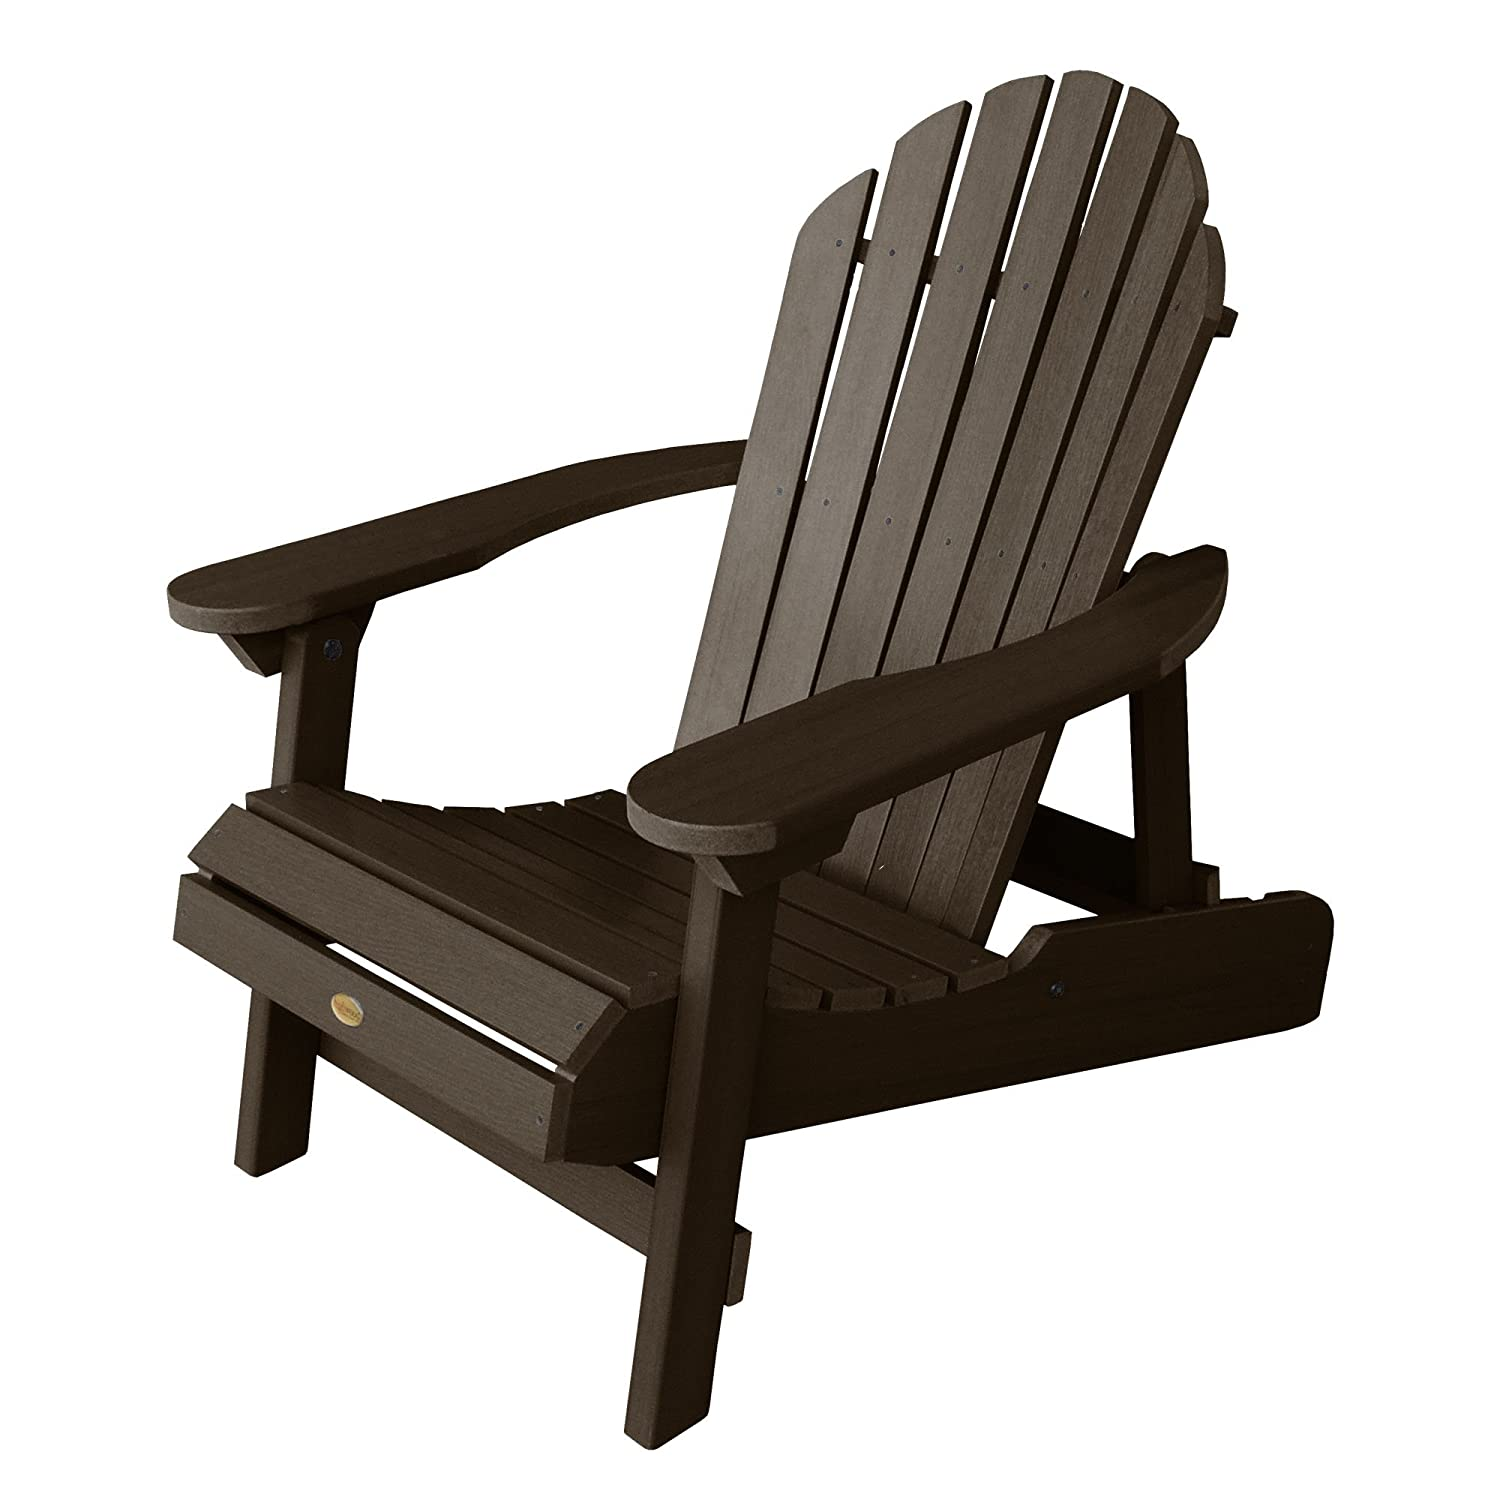 The Best Adirondack Chairs 2